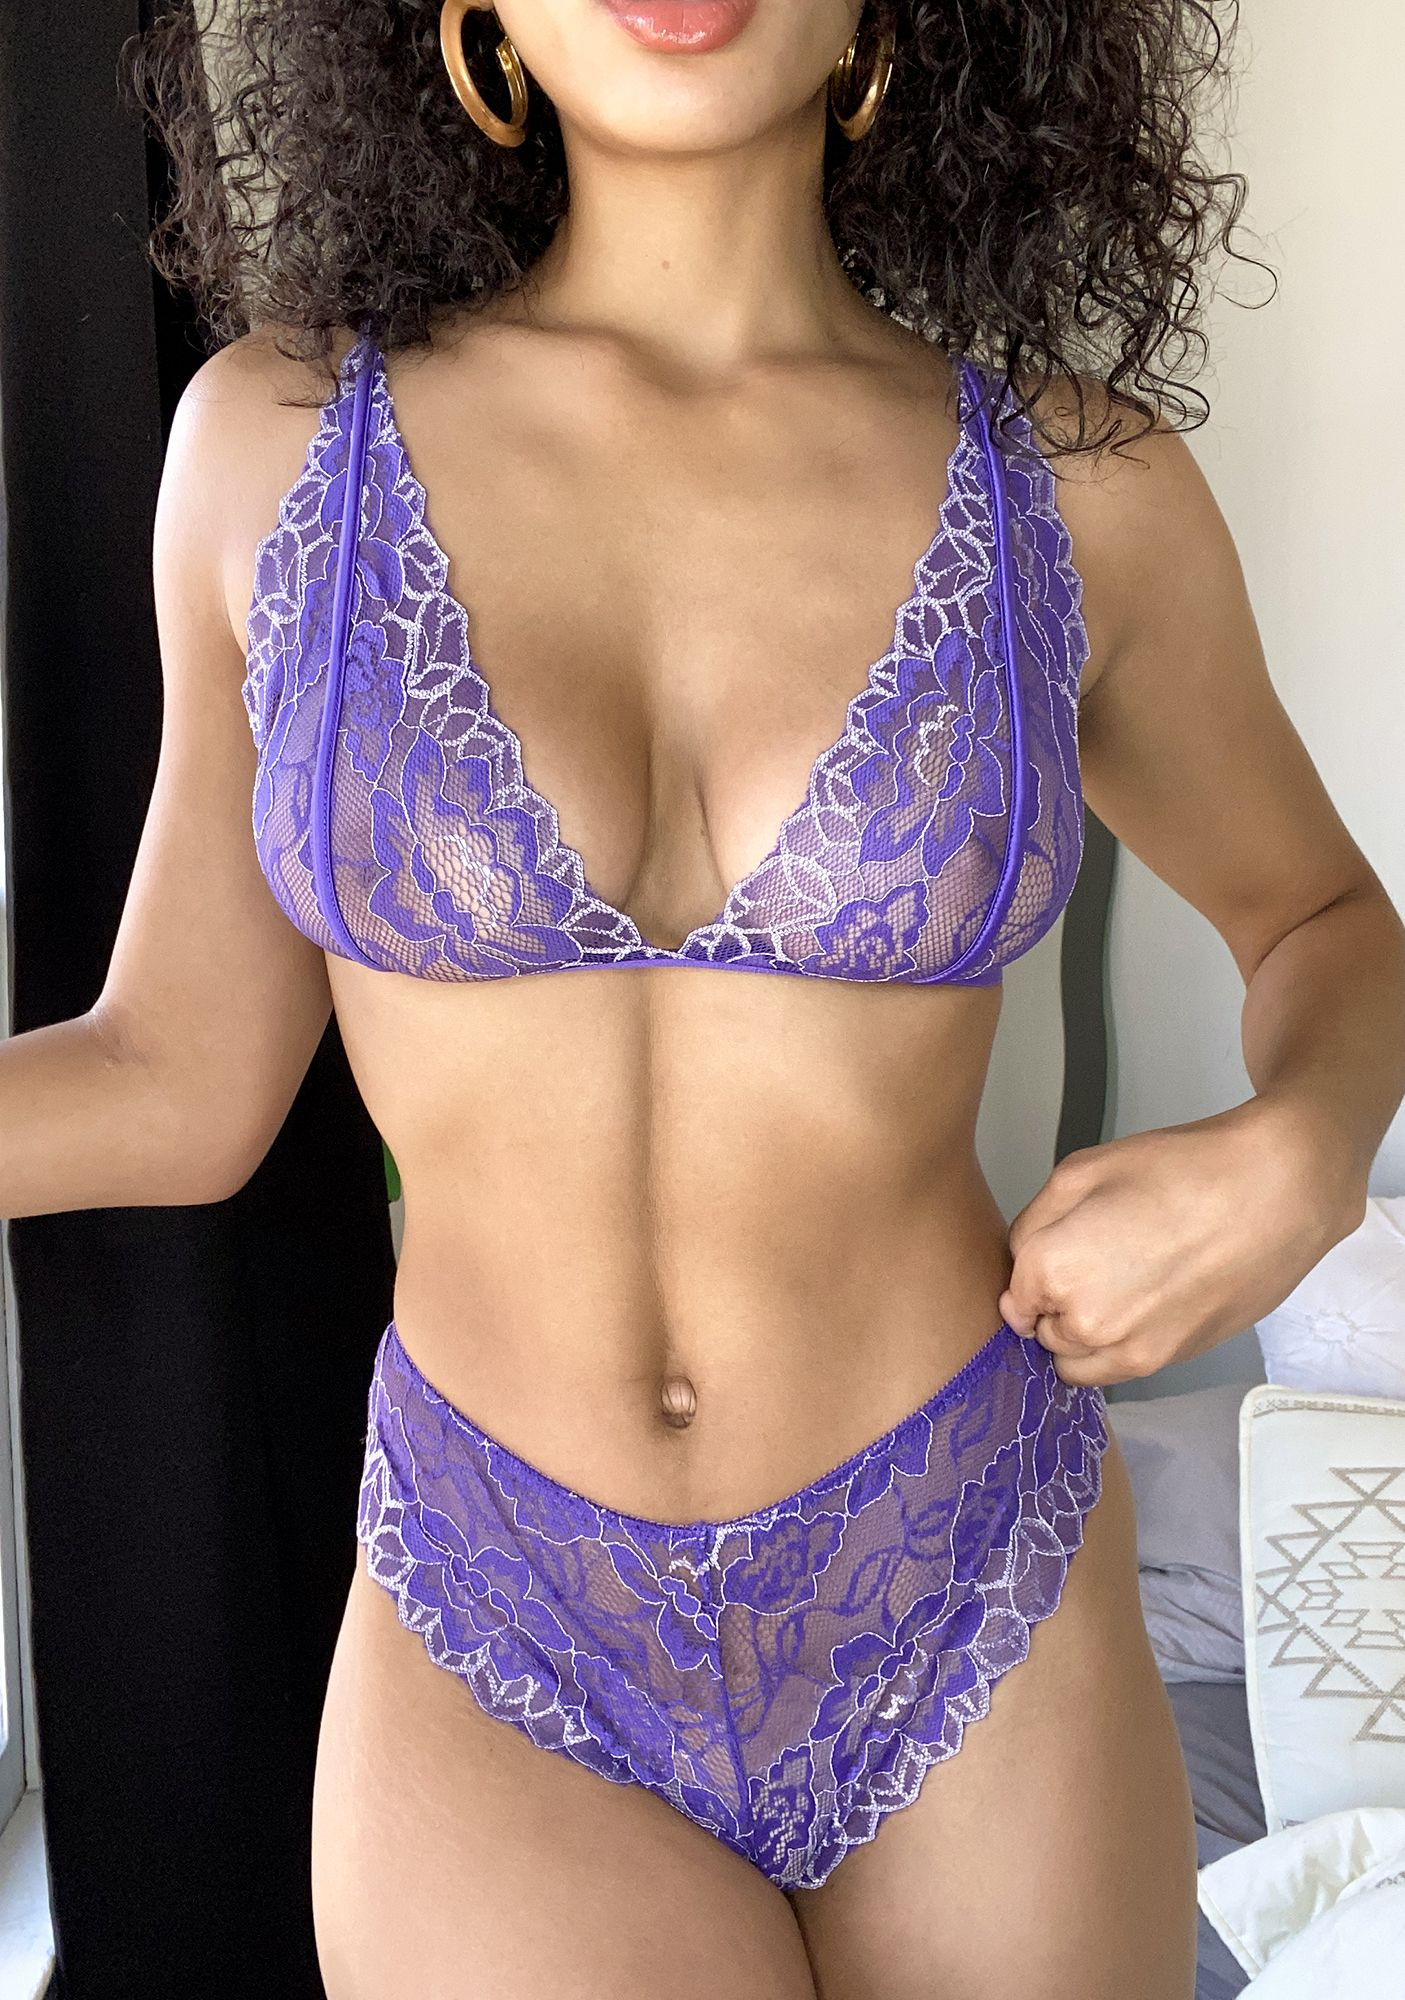 2020 New Style Lingerie Women Soft Cup Bras Cheap Knickers Panty Deals